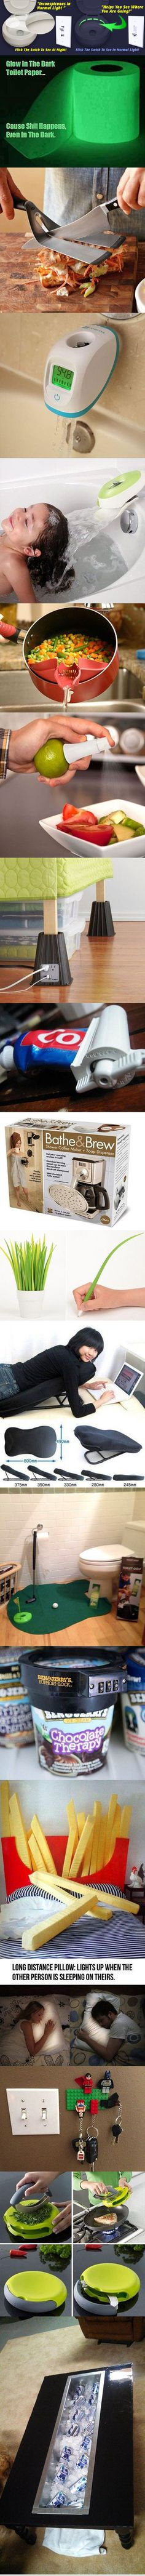 More cool inventions